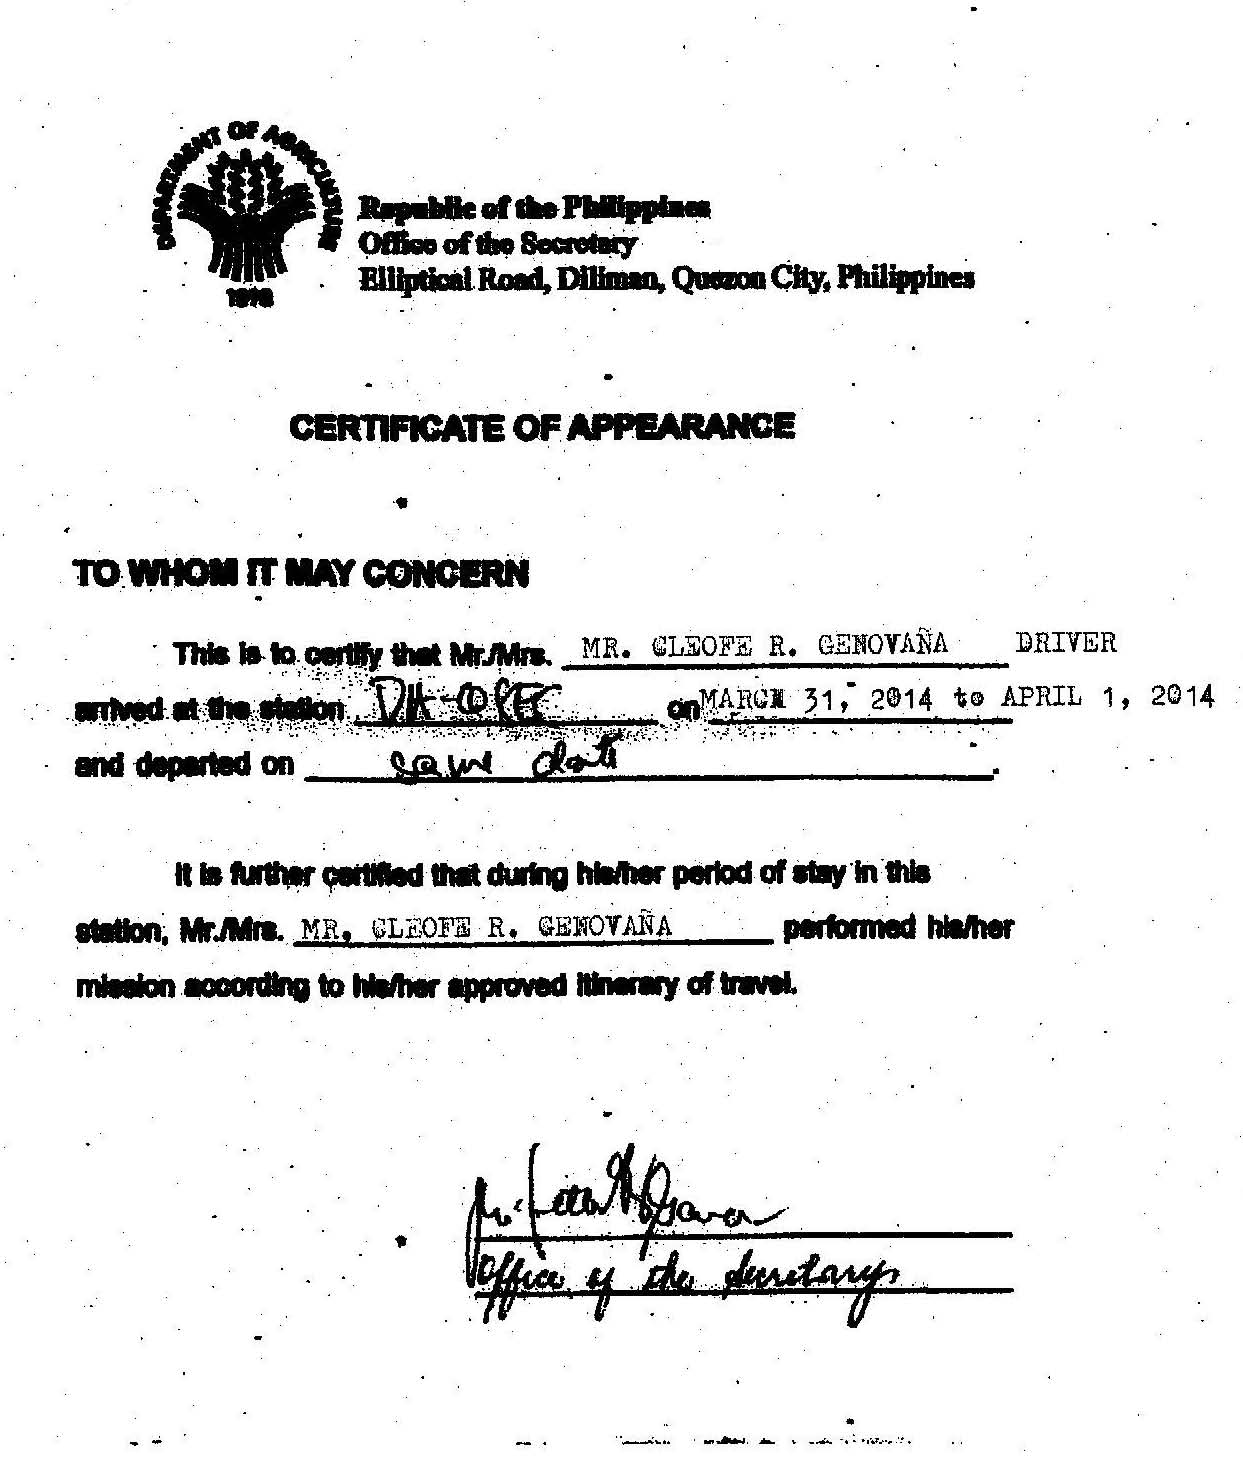 Certificate of Appearance March 31 - April 1, 2014